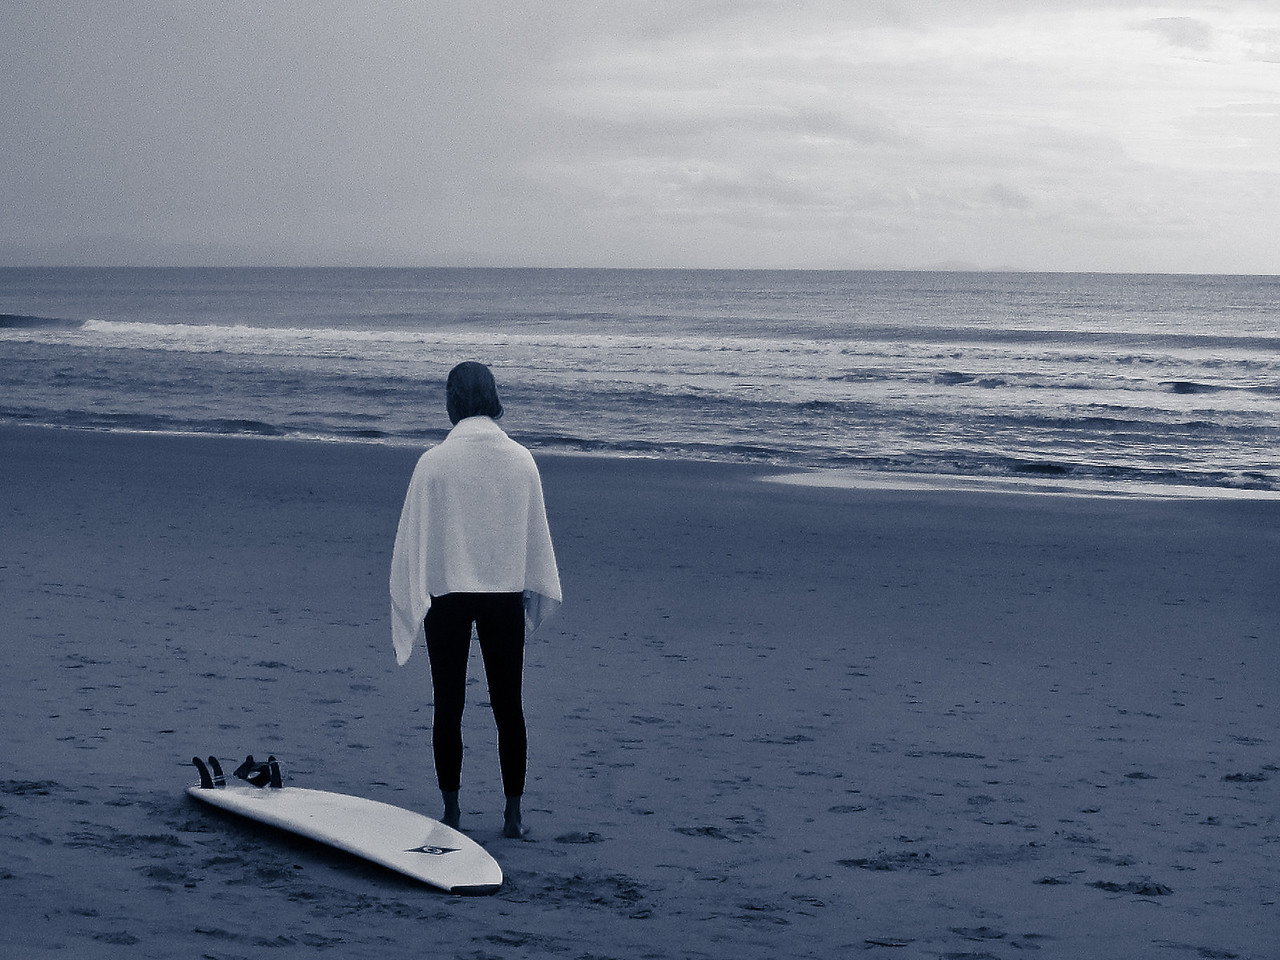 'Me and my playground' -  A surfer staring at the ocean after a surf session at Byron Bay, Australia.